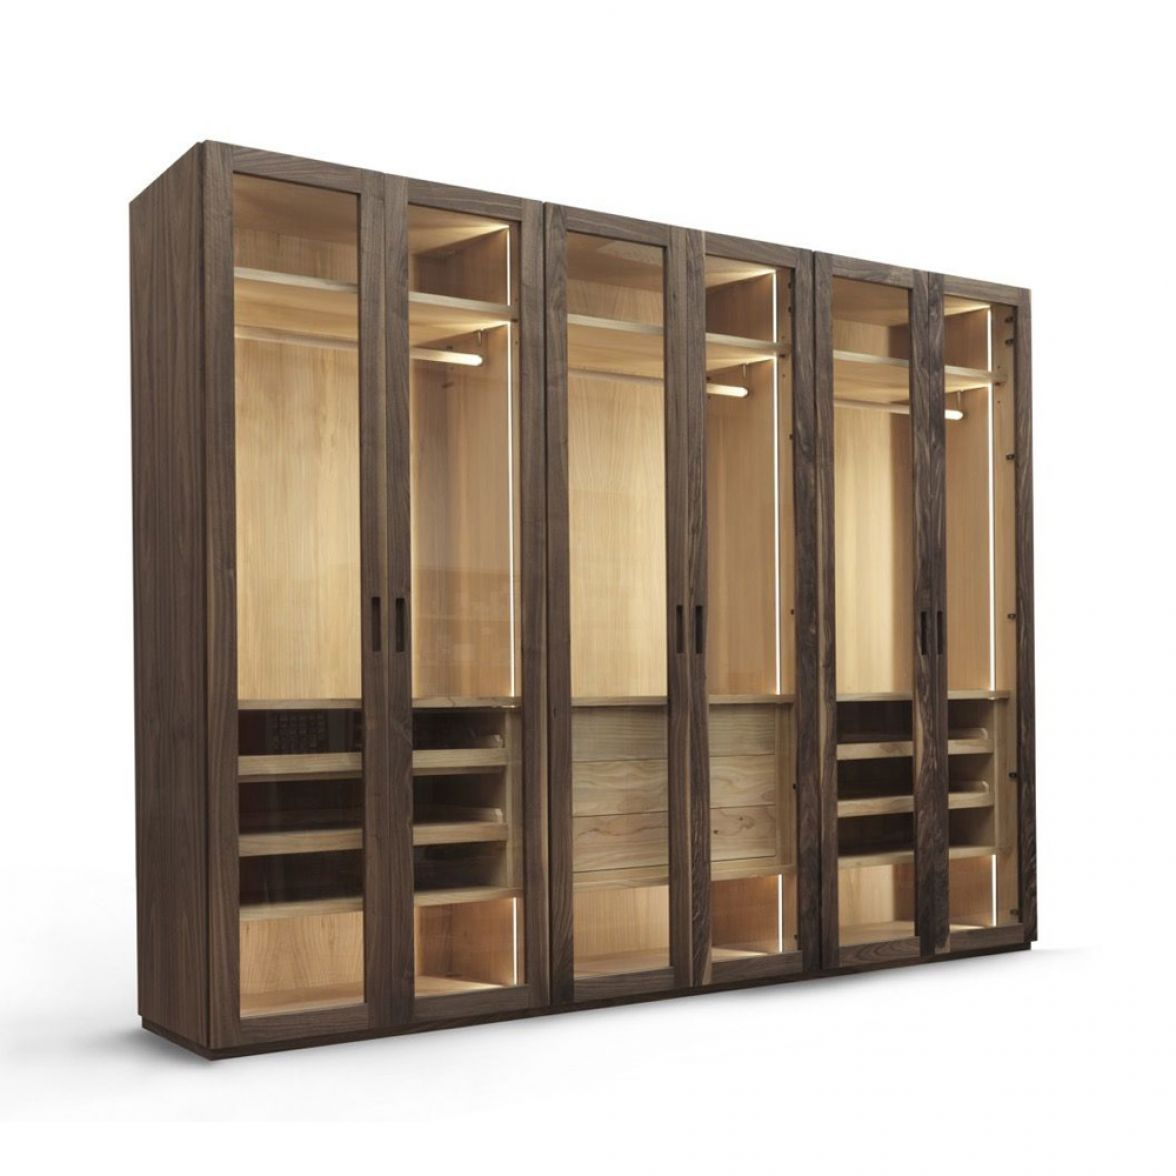 Four season glass Wardrobe фото цена